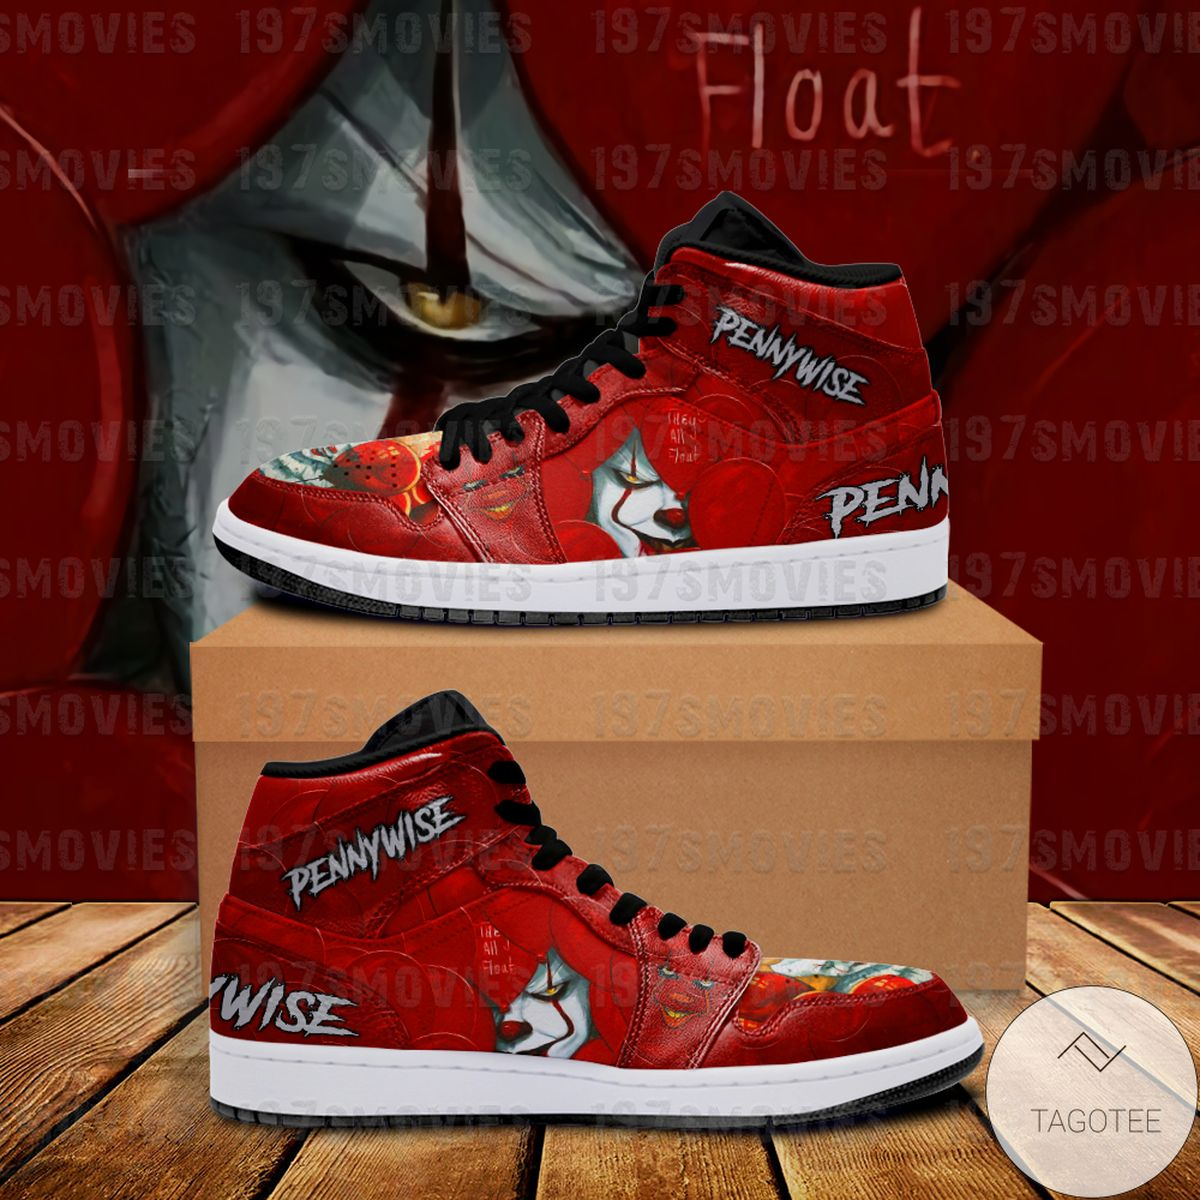 Vibrant IT Pennywise Sneaker Air Jordan High Top Shoes